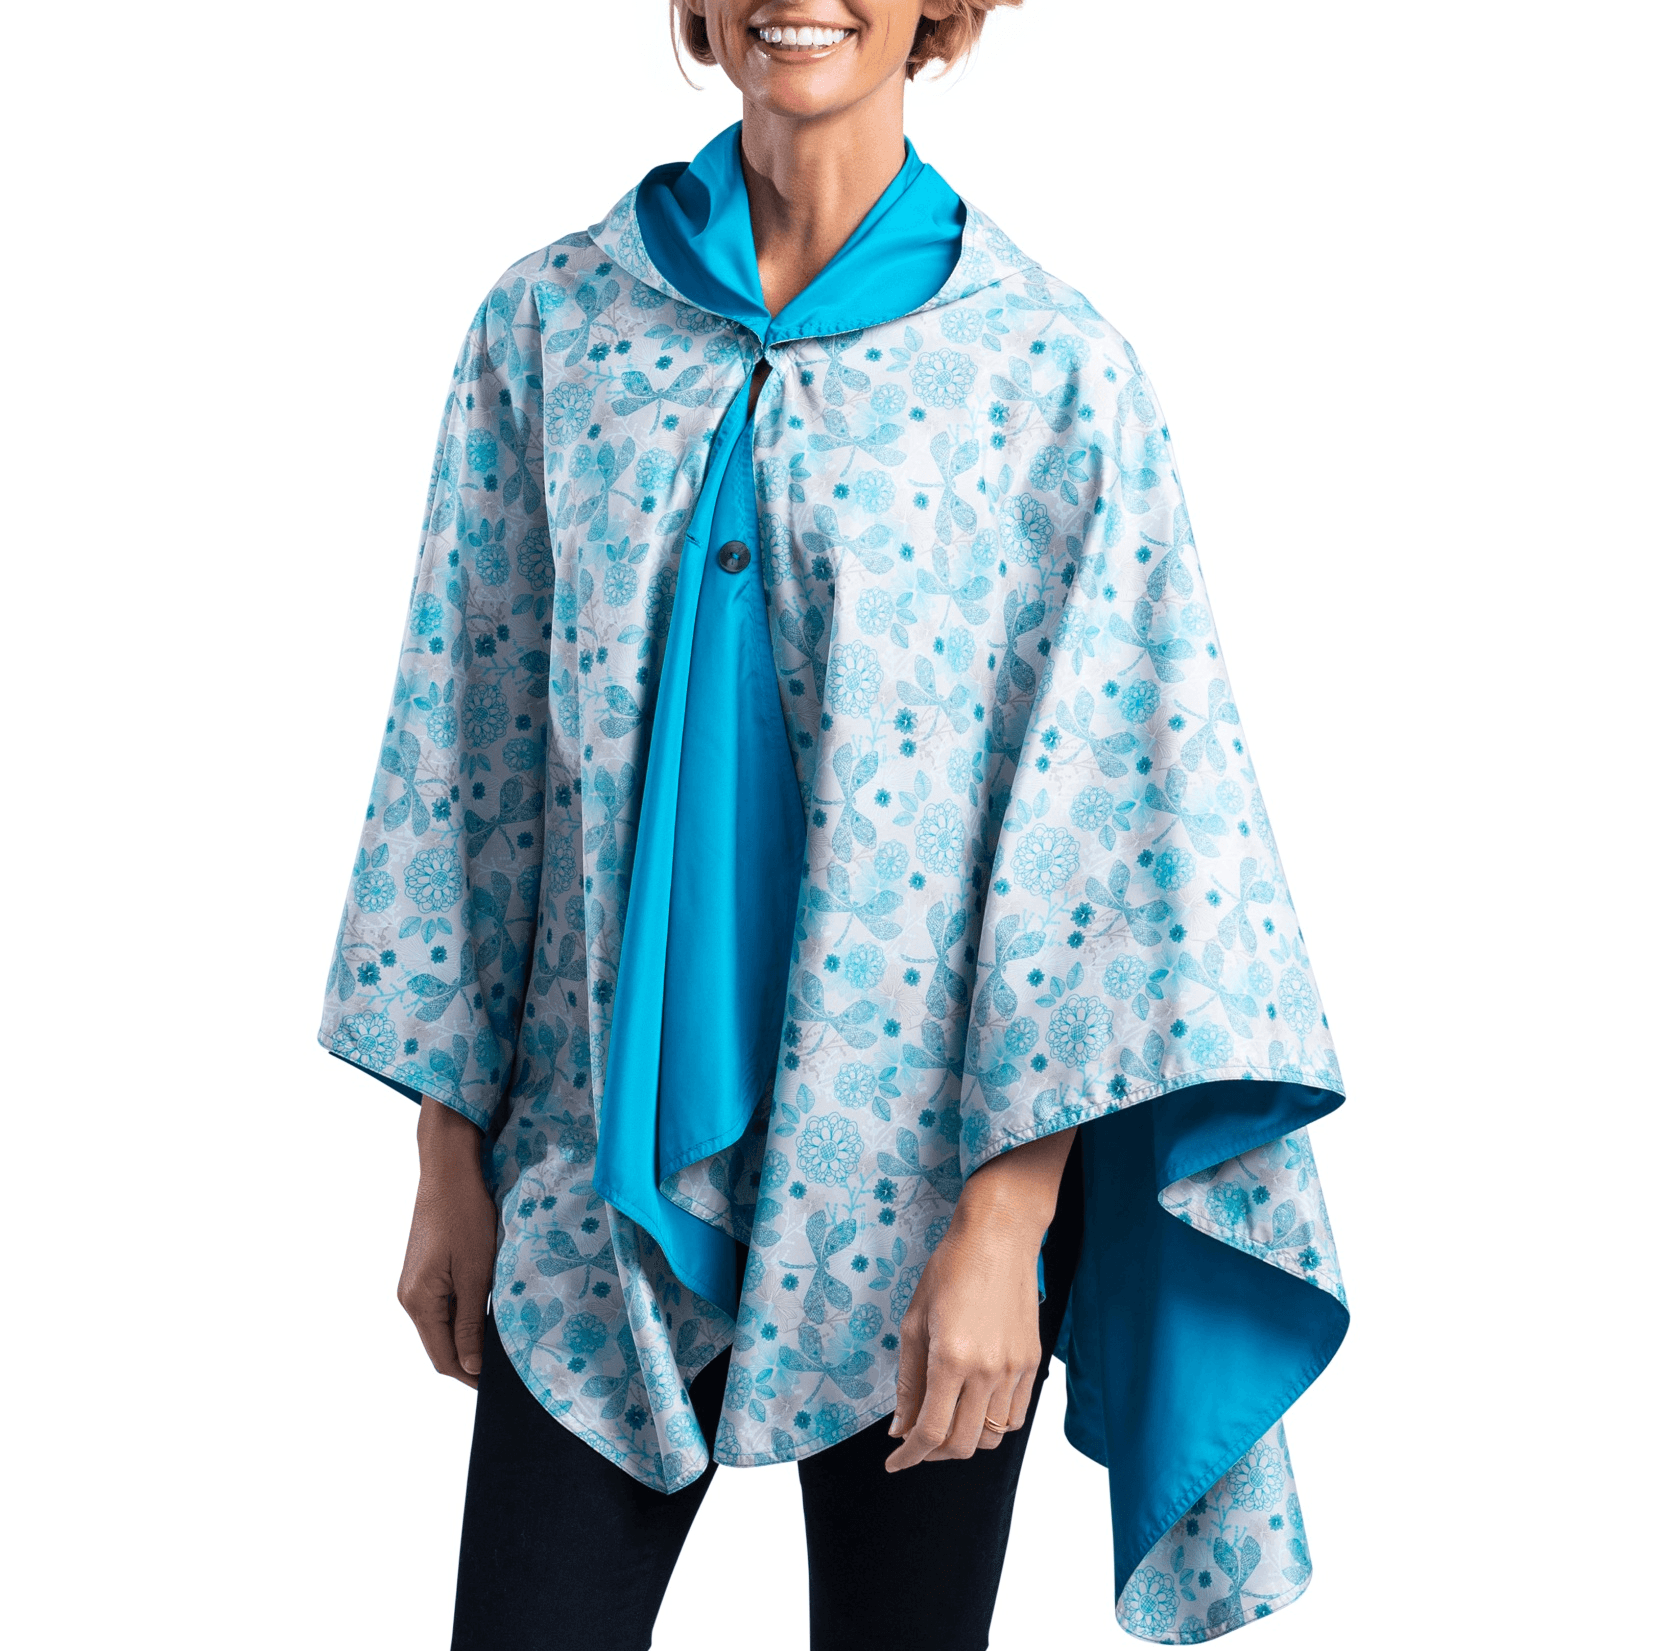 Woman wearing an Aqua and Dragonflies Wind RainCaper Travel Cape with the Dragonflies Wind side out, revealing the Aqua print at the lapels and neckline